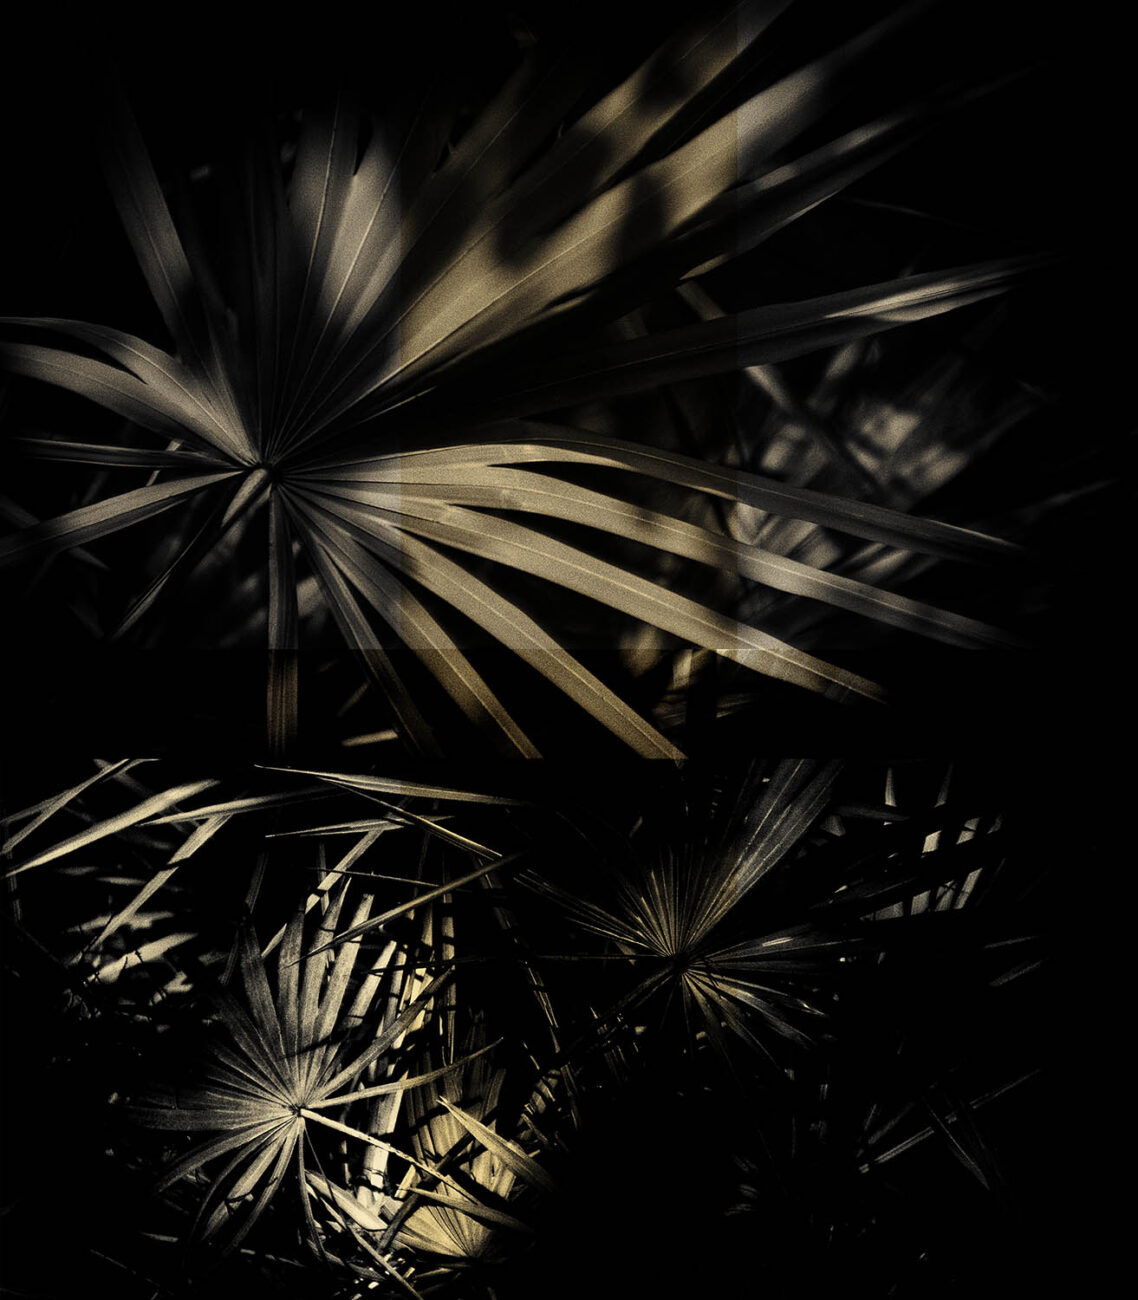 Sabel palm leaves in deep shadow